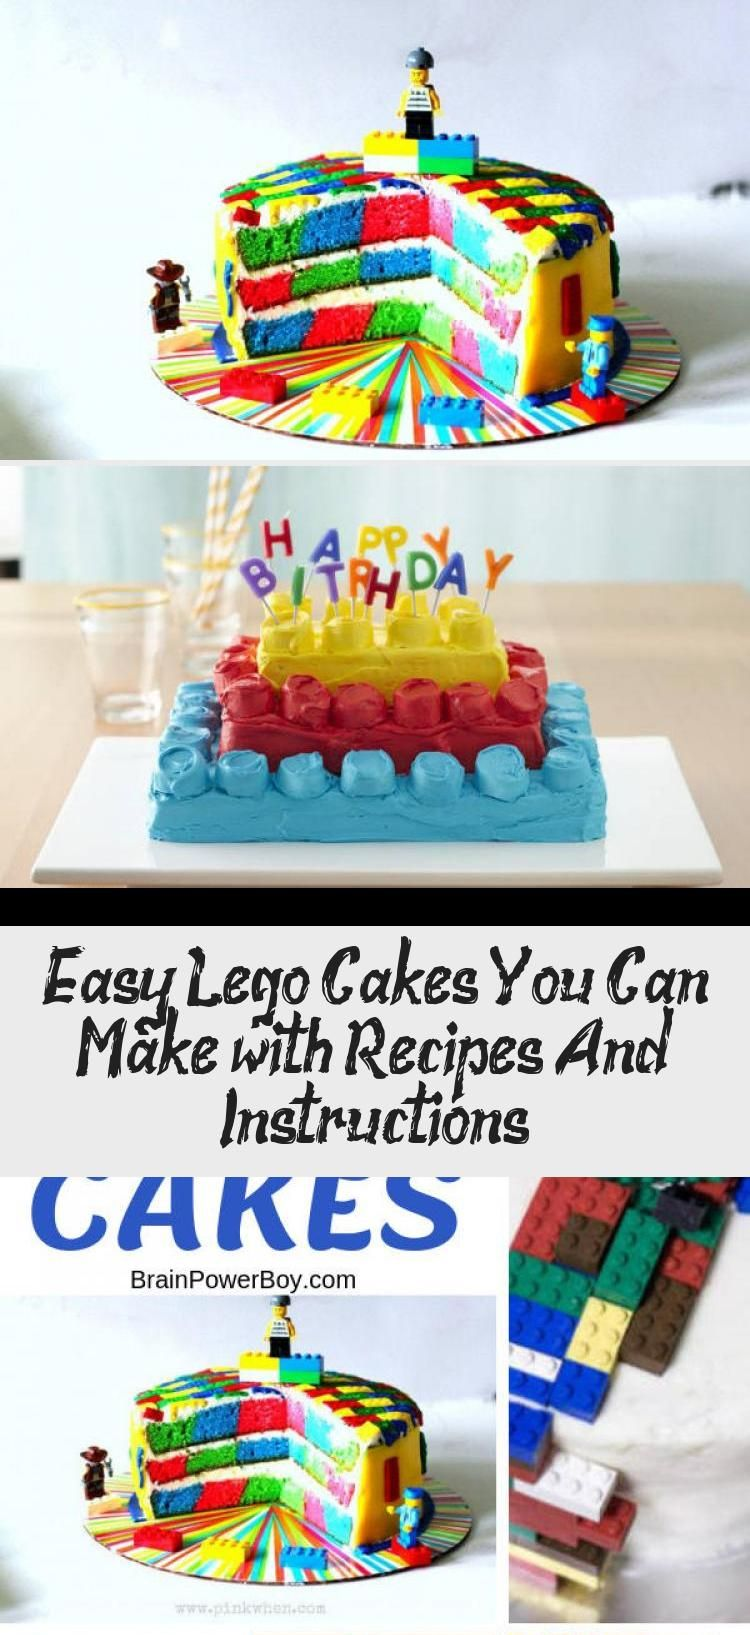 Easy lego cakes you can make with recipes and